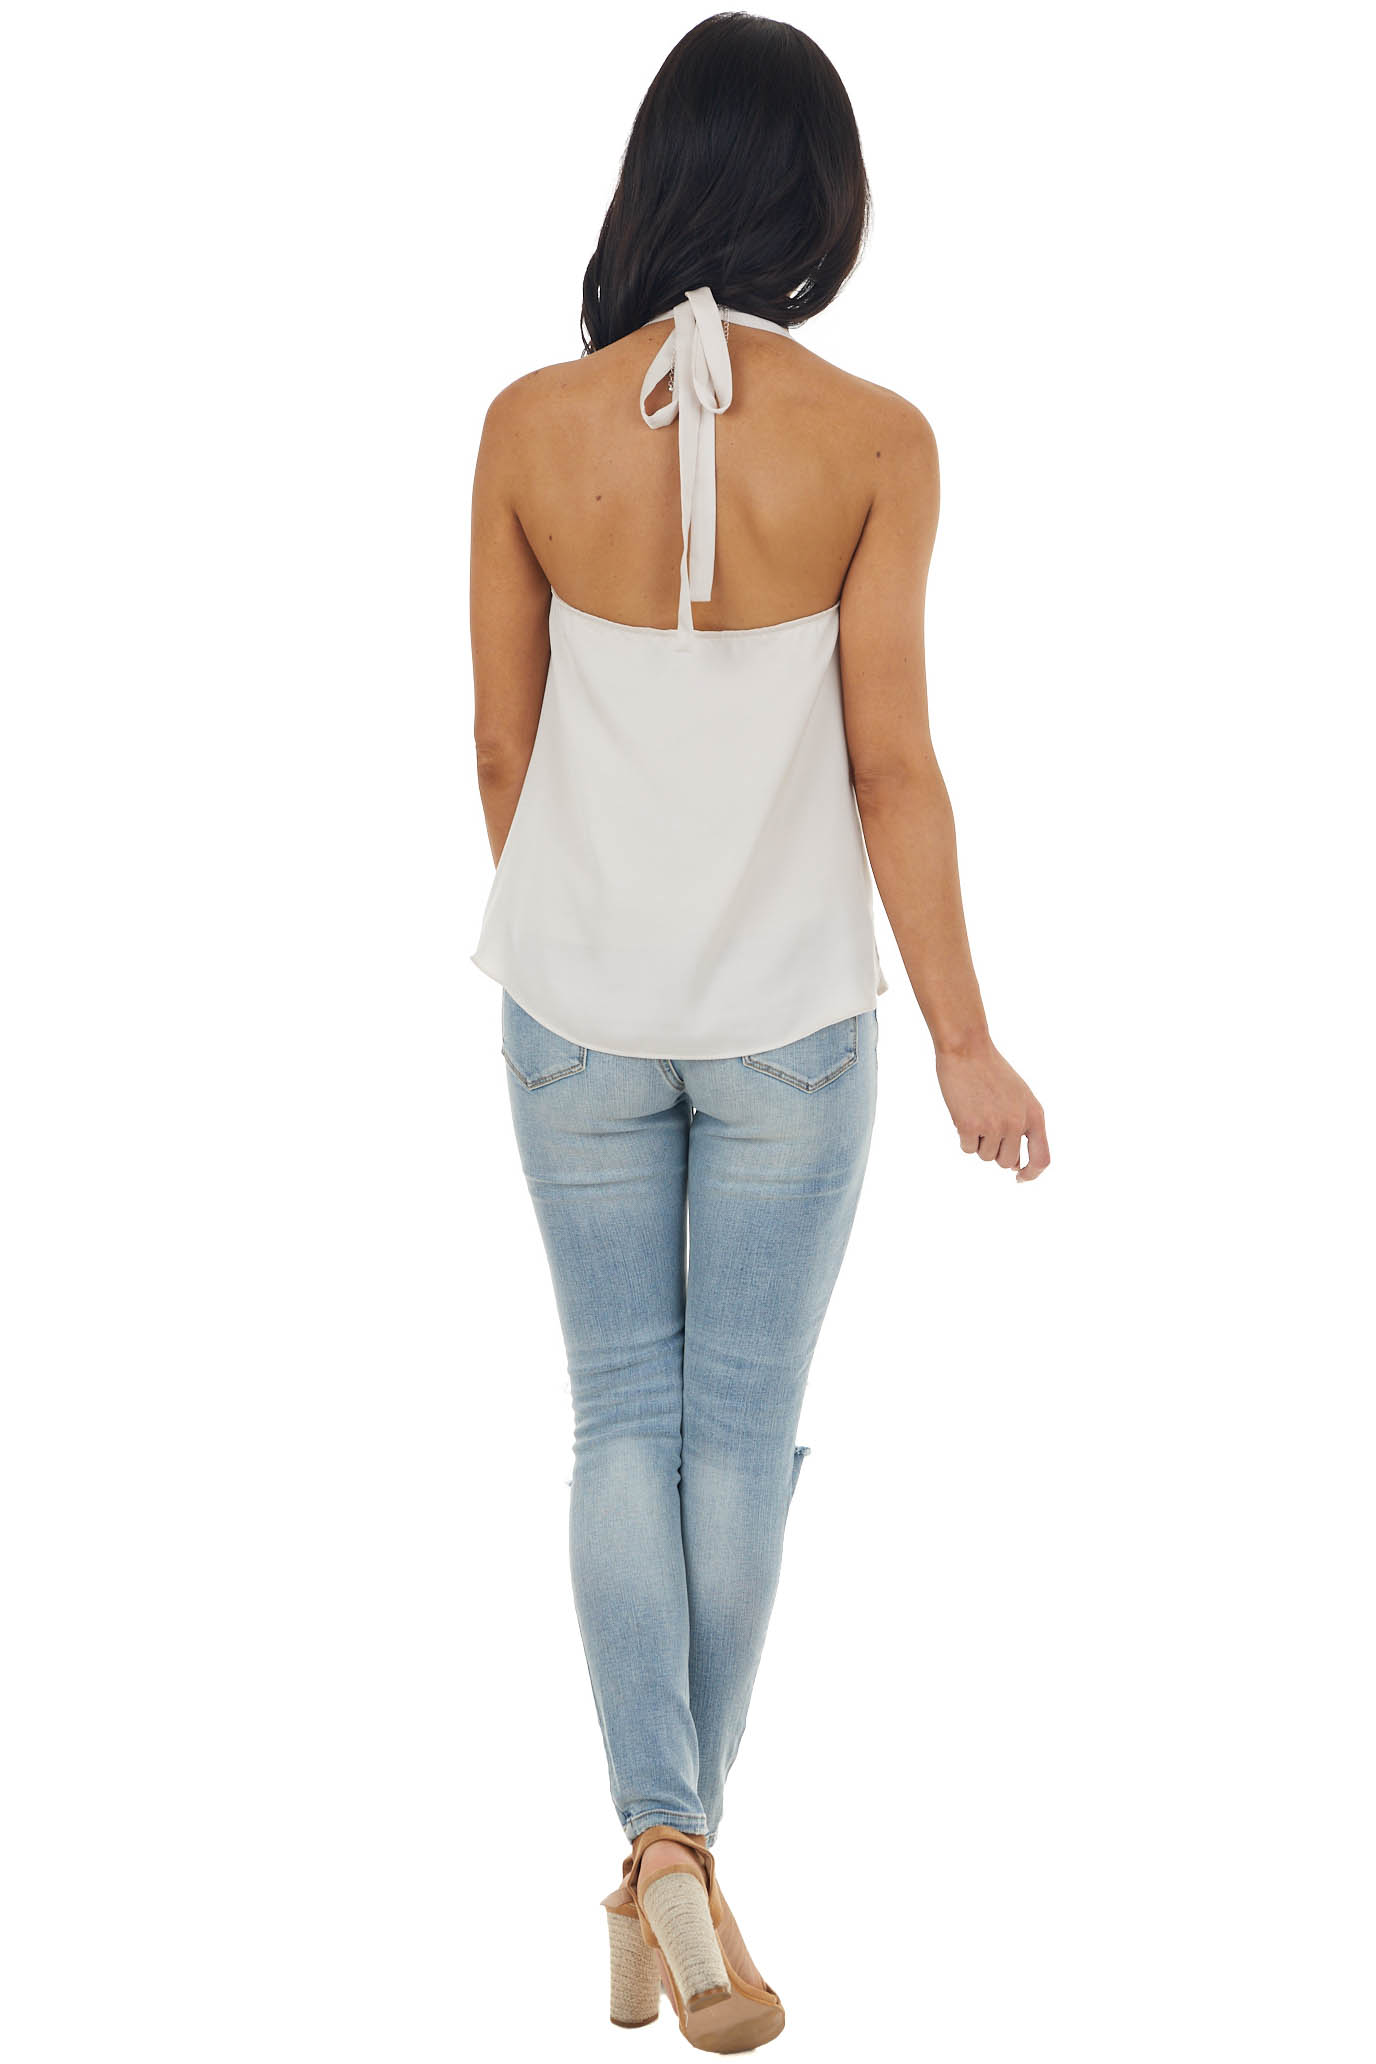 Champagne Halter Neck Top with Draped Front and Lace Details